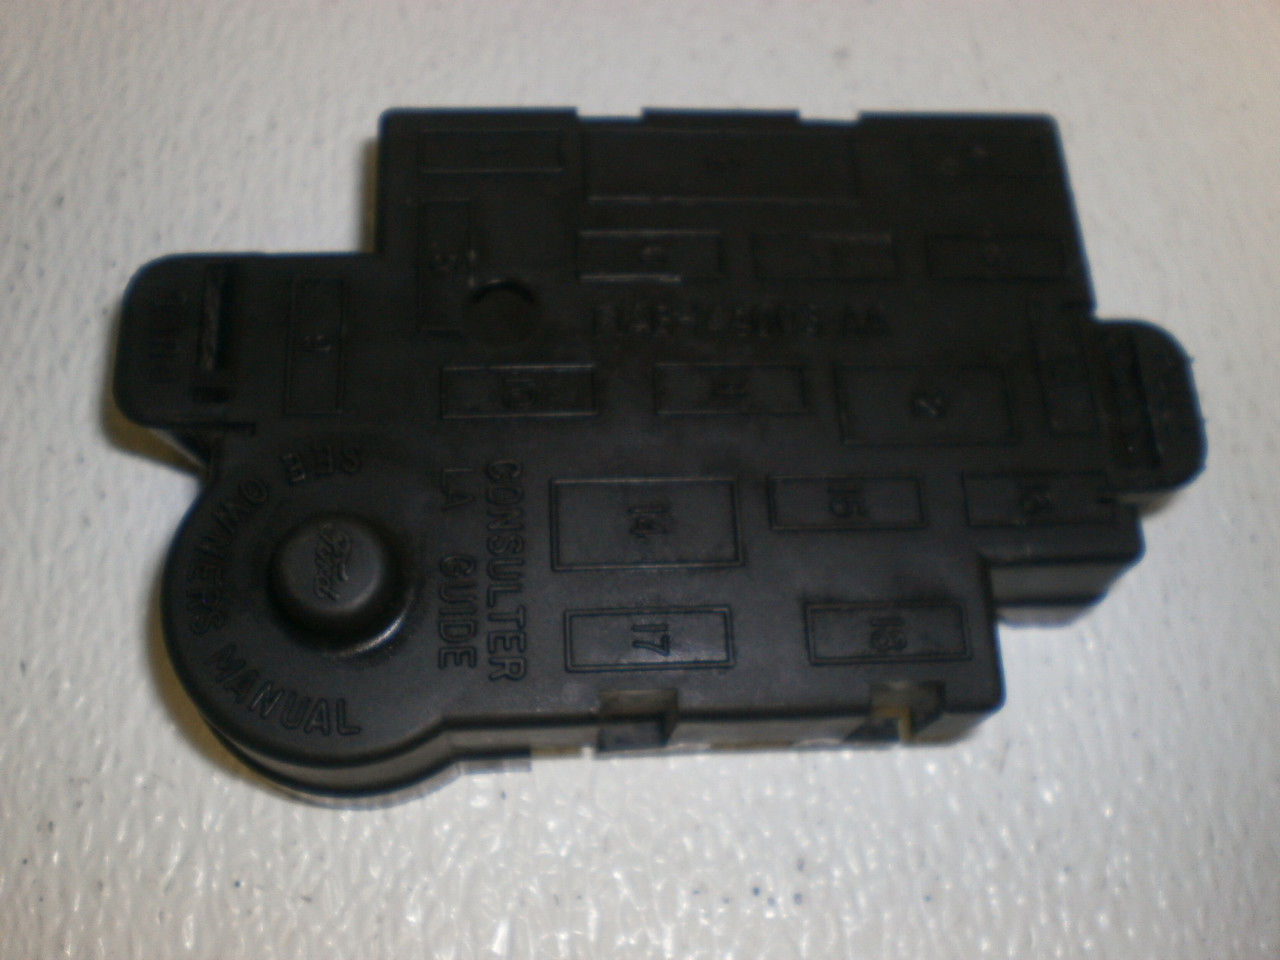 1998 2001 Ford Mustang Center Console Wire Harness Loom Fuse Box Cover For 1999 Gt Larger More Photos